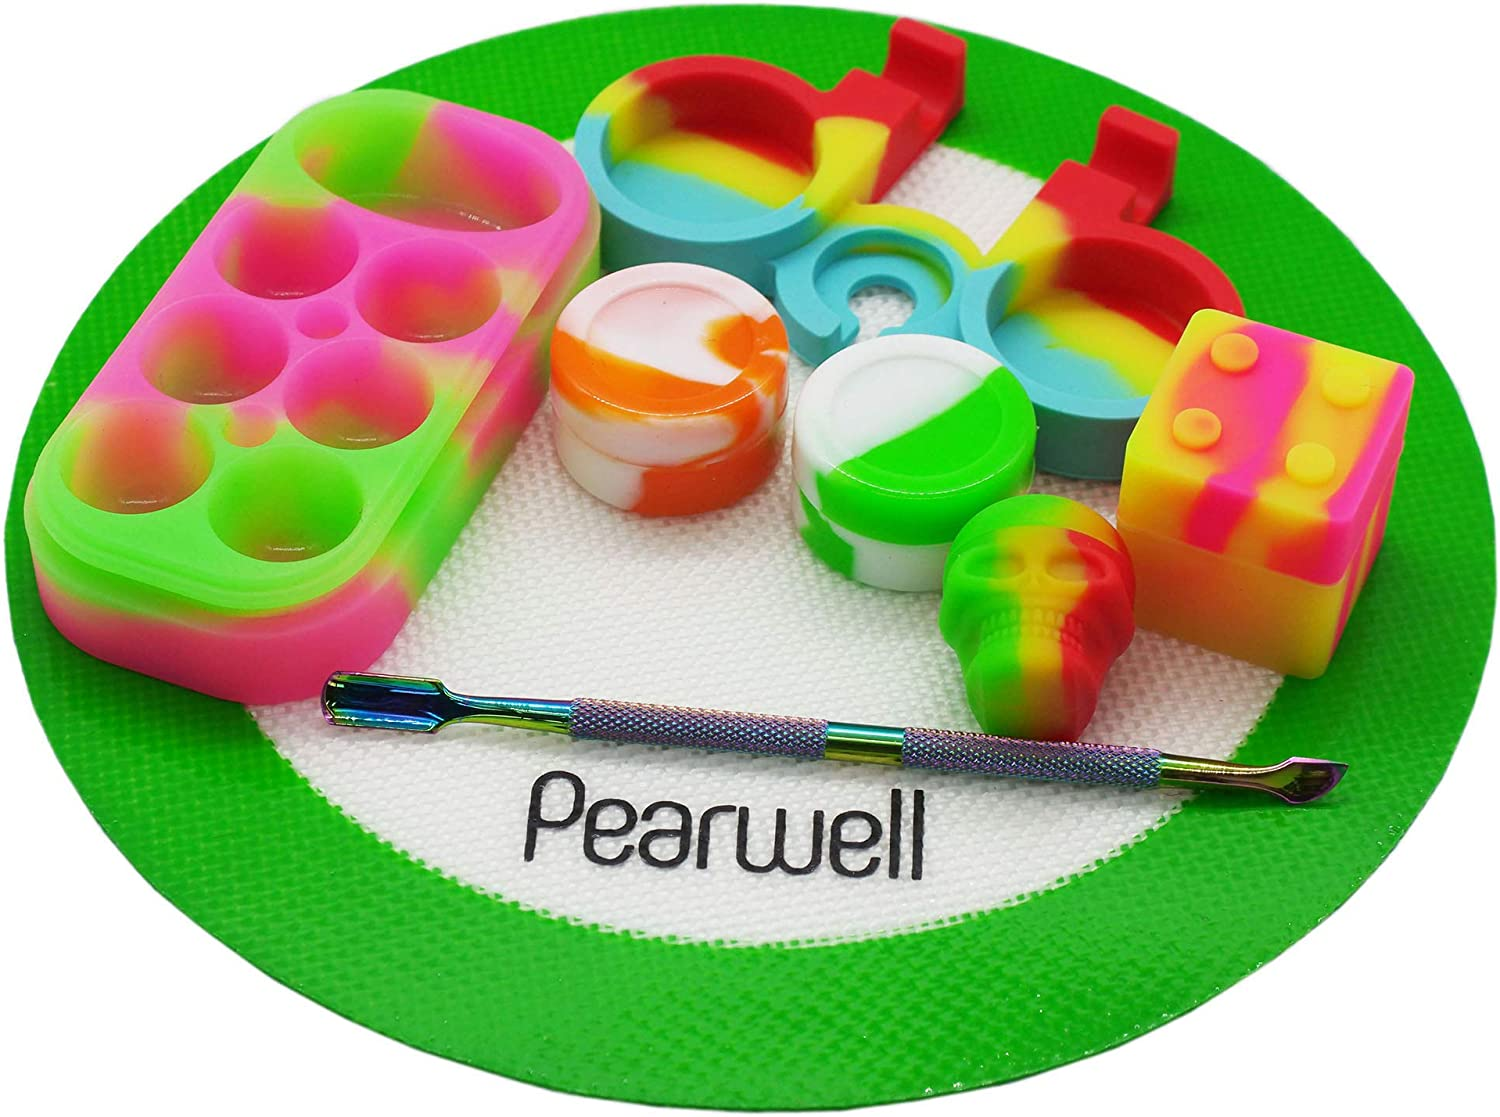 Pearwell Food Grade Silicone Wax Jar Mat Kit (Set of 8), 1 Green Round Mat + 1 Carving Tool + 1 Silicone Holder for 5ml + 5 Non-stick Silicone Containers 3ml 5ml 9ml 34ml (Green)